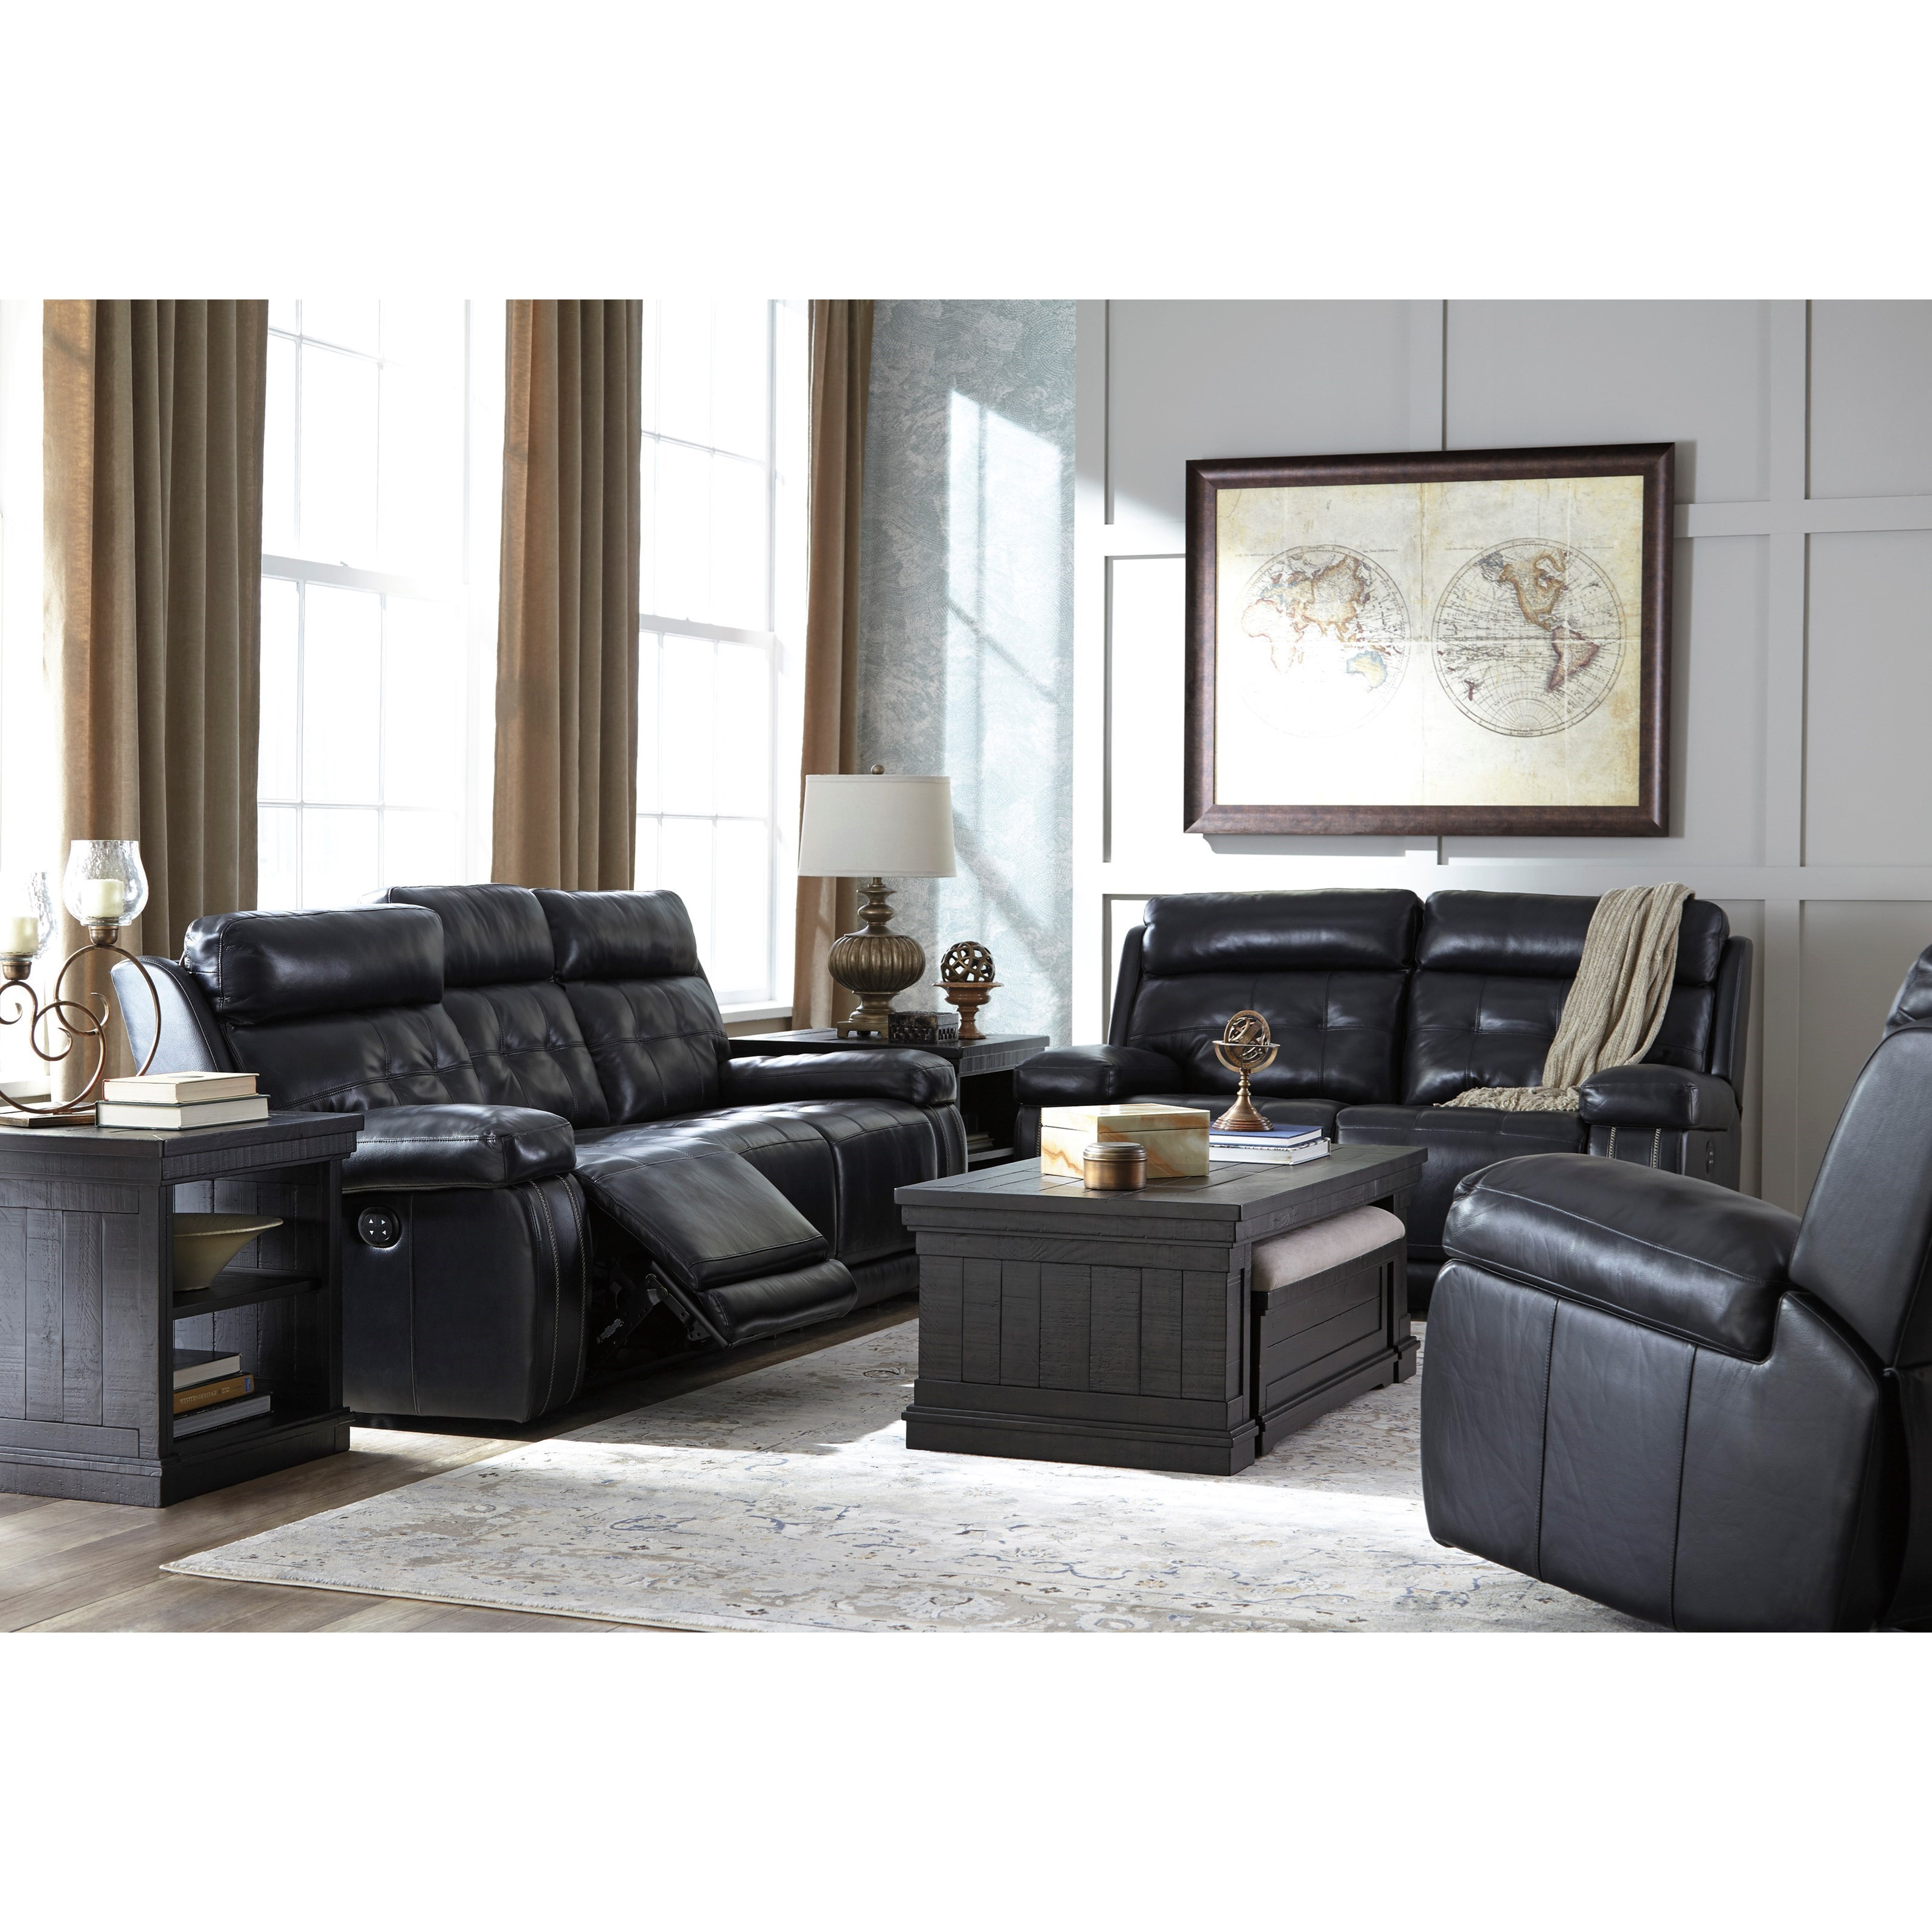 Living room group del sol furniture reclining living room groups